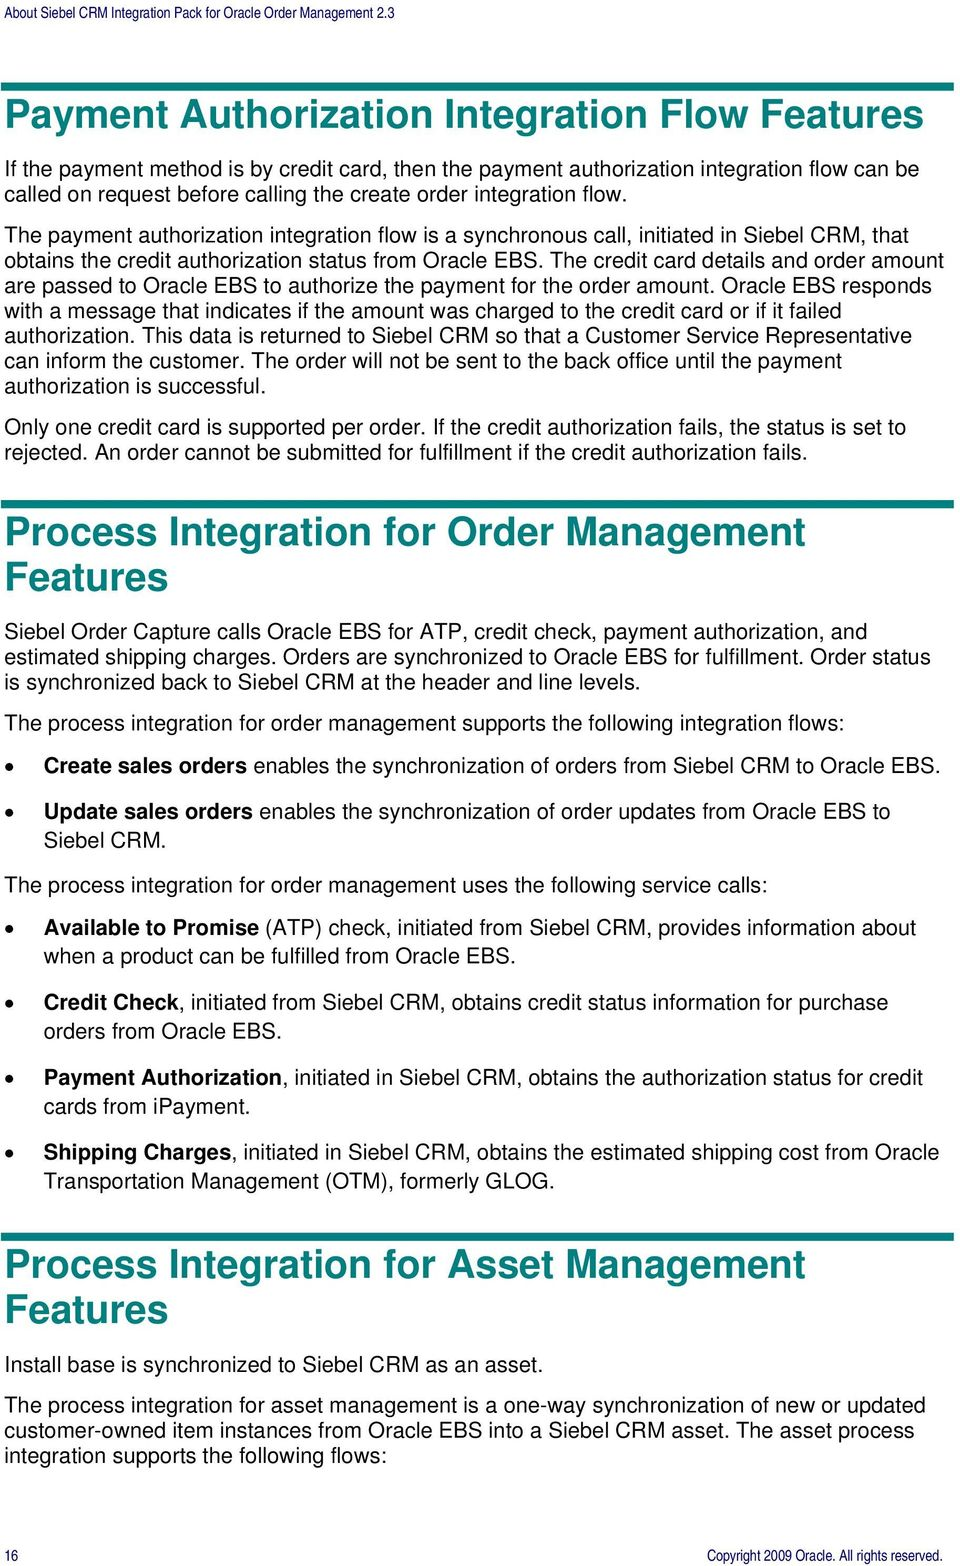 The credit card details and order amount are passed to Oracle EBS to authorize the payment for the order amount.